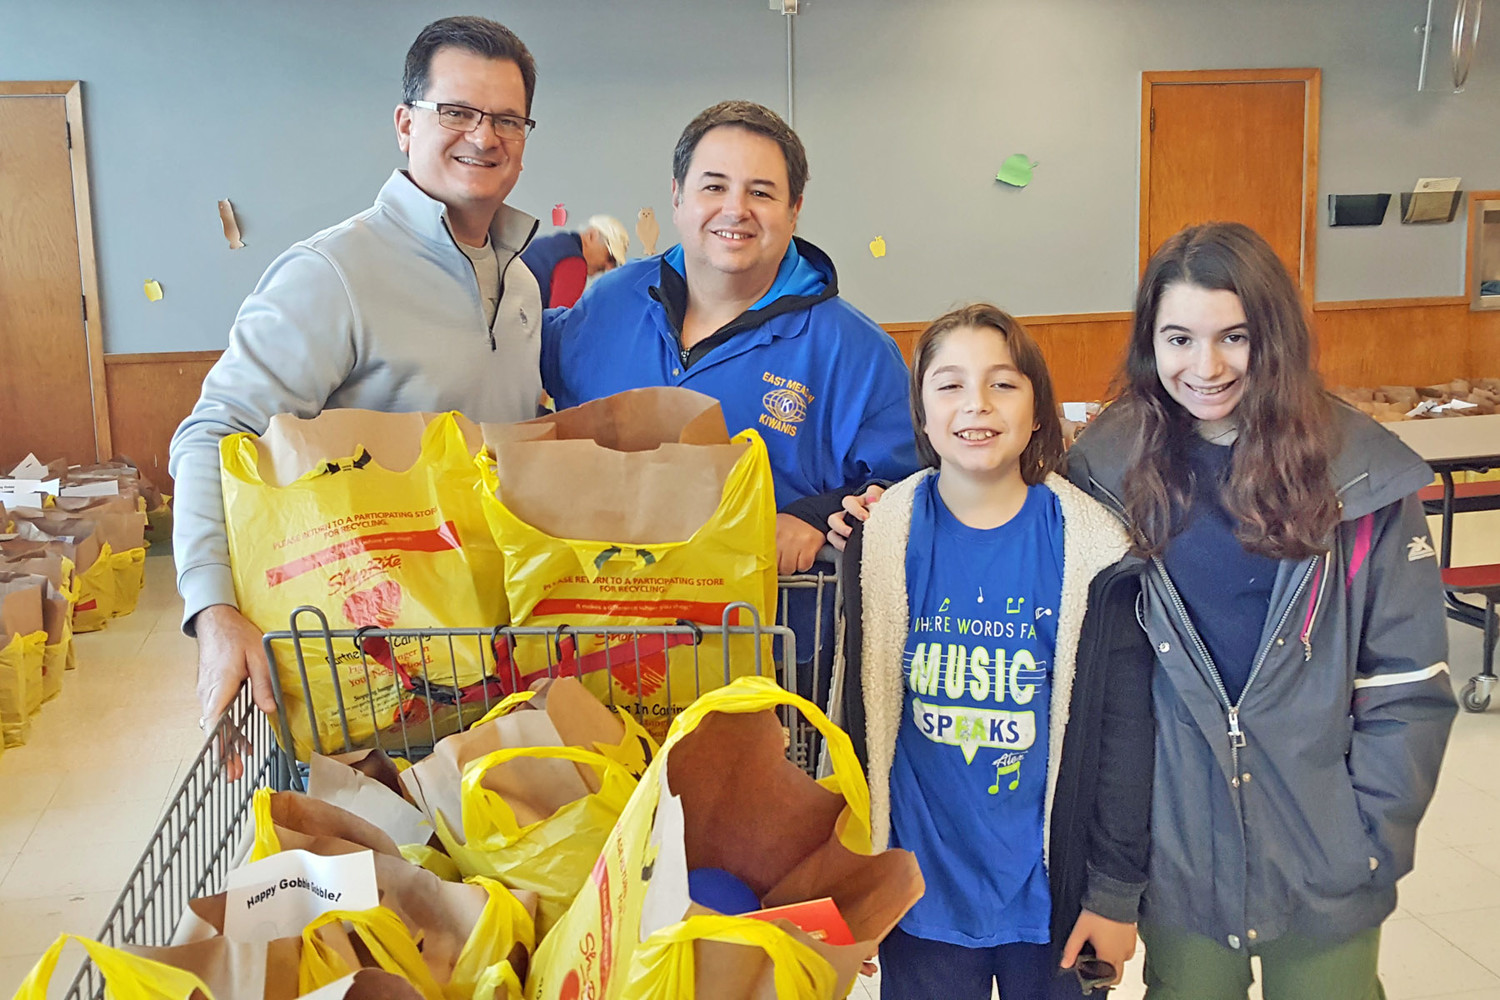 Distinguished kiwanis club of East Meadow Past President Harry Demiris, Jr., left, helped Ross Schiller and his children, David and Hailey, with holiday food baskets.